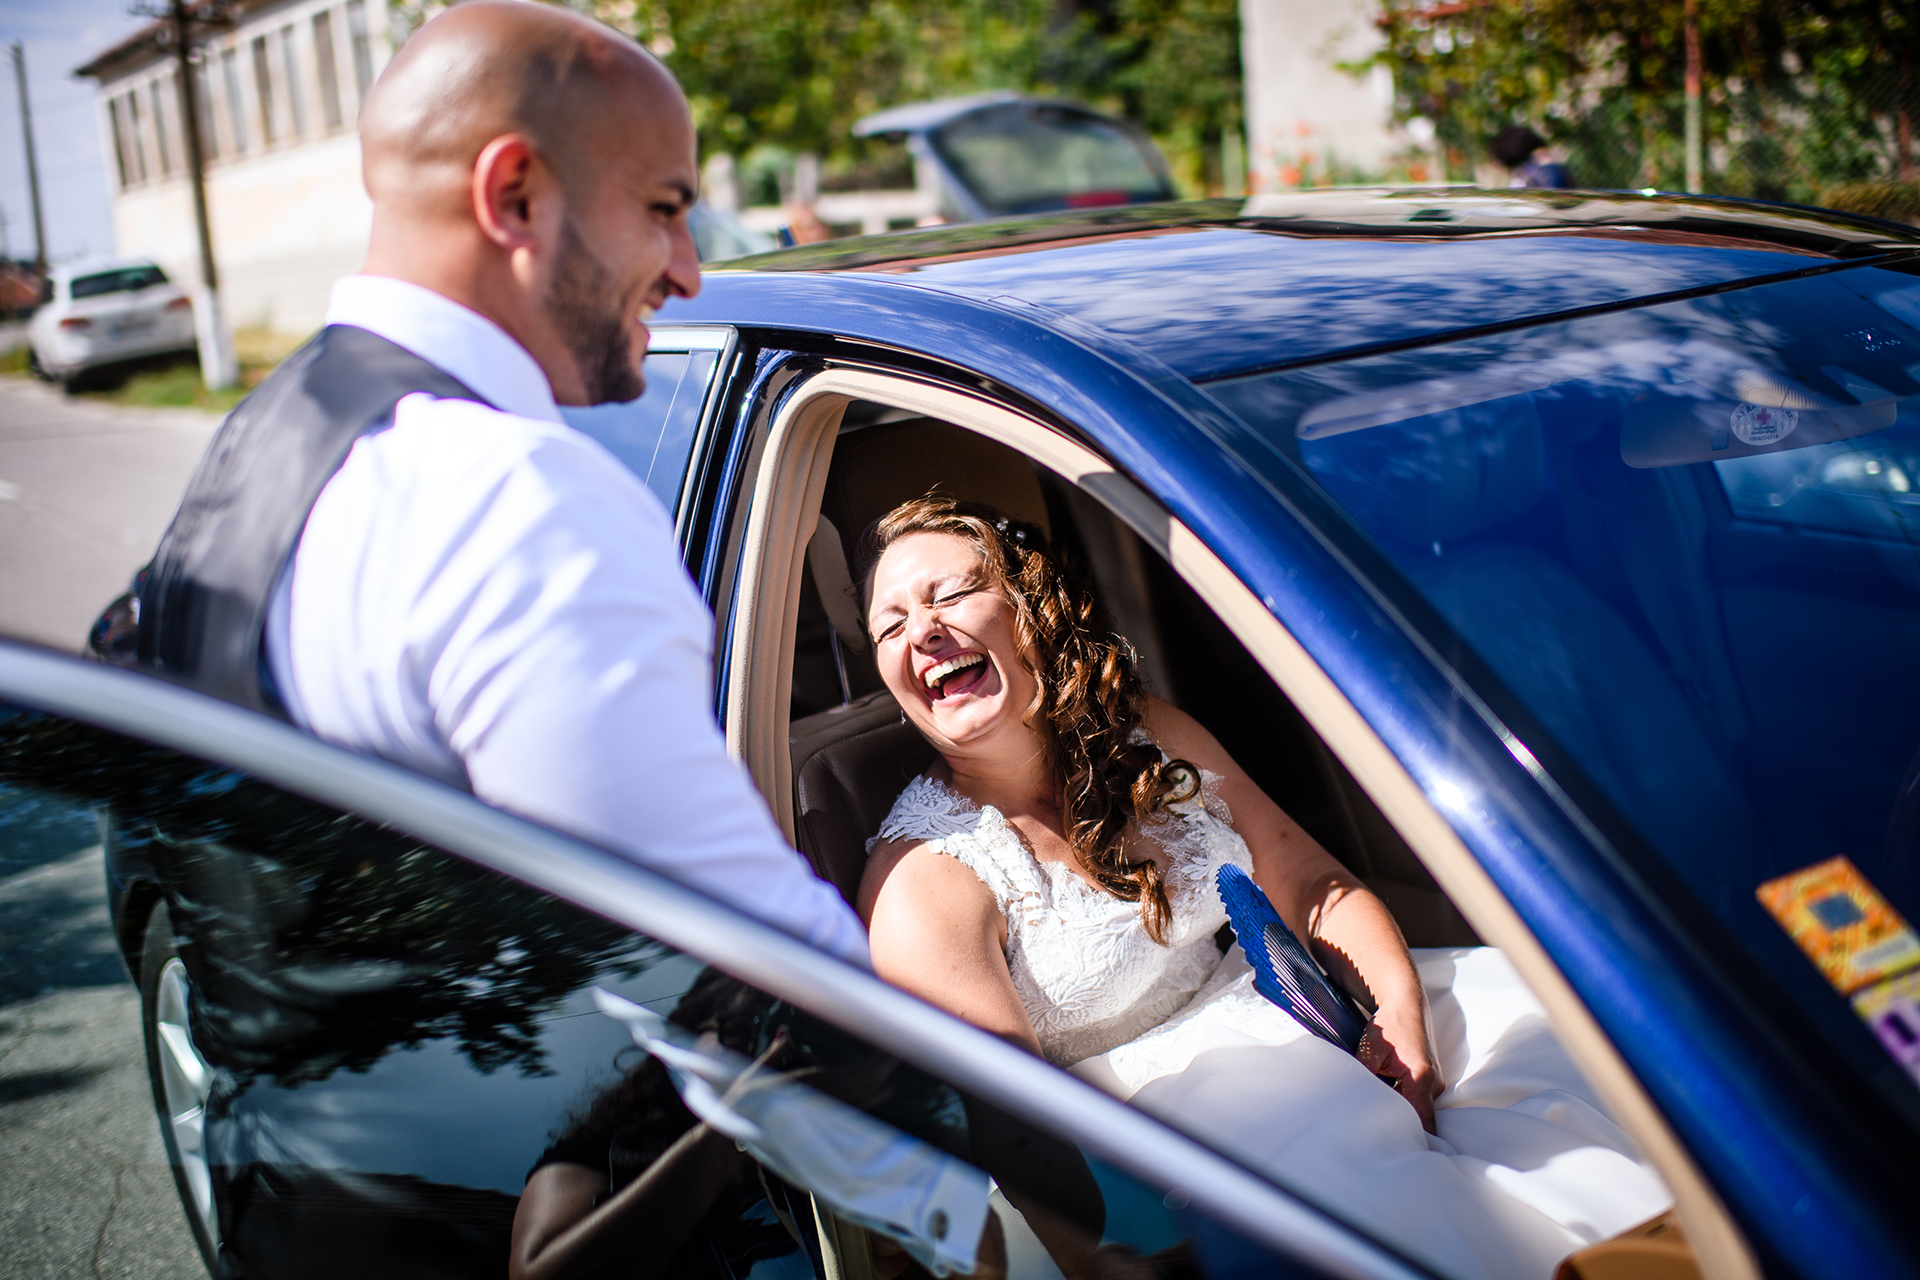 Bulgaria Elopement Picture | The groom helps the bride into a car